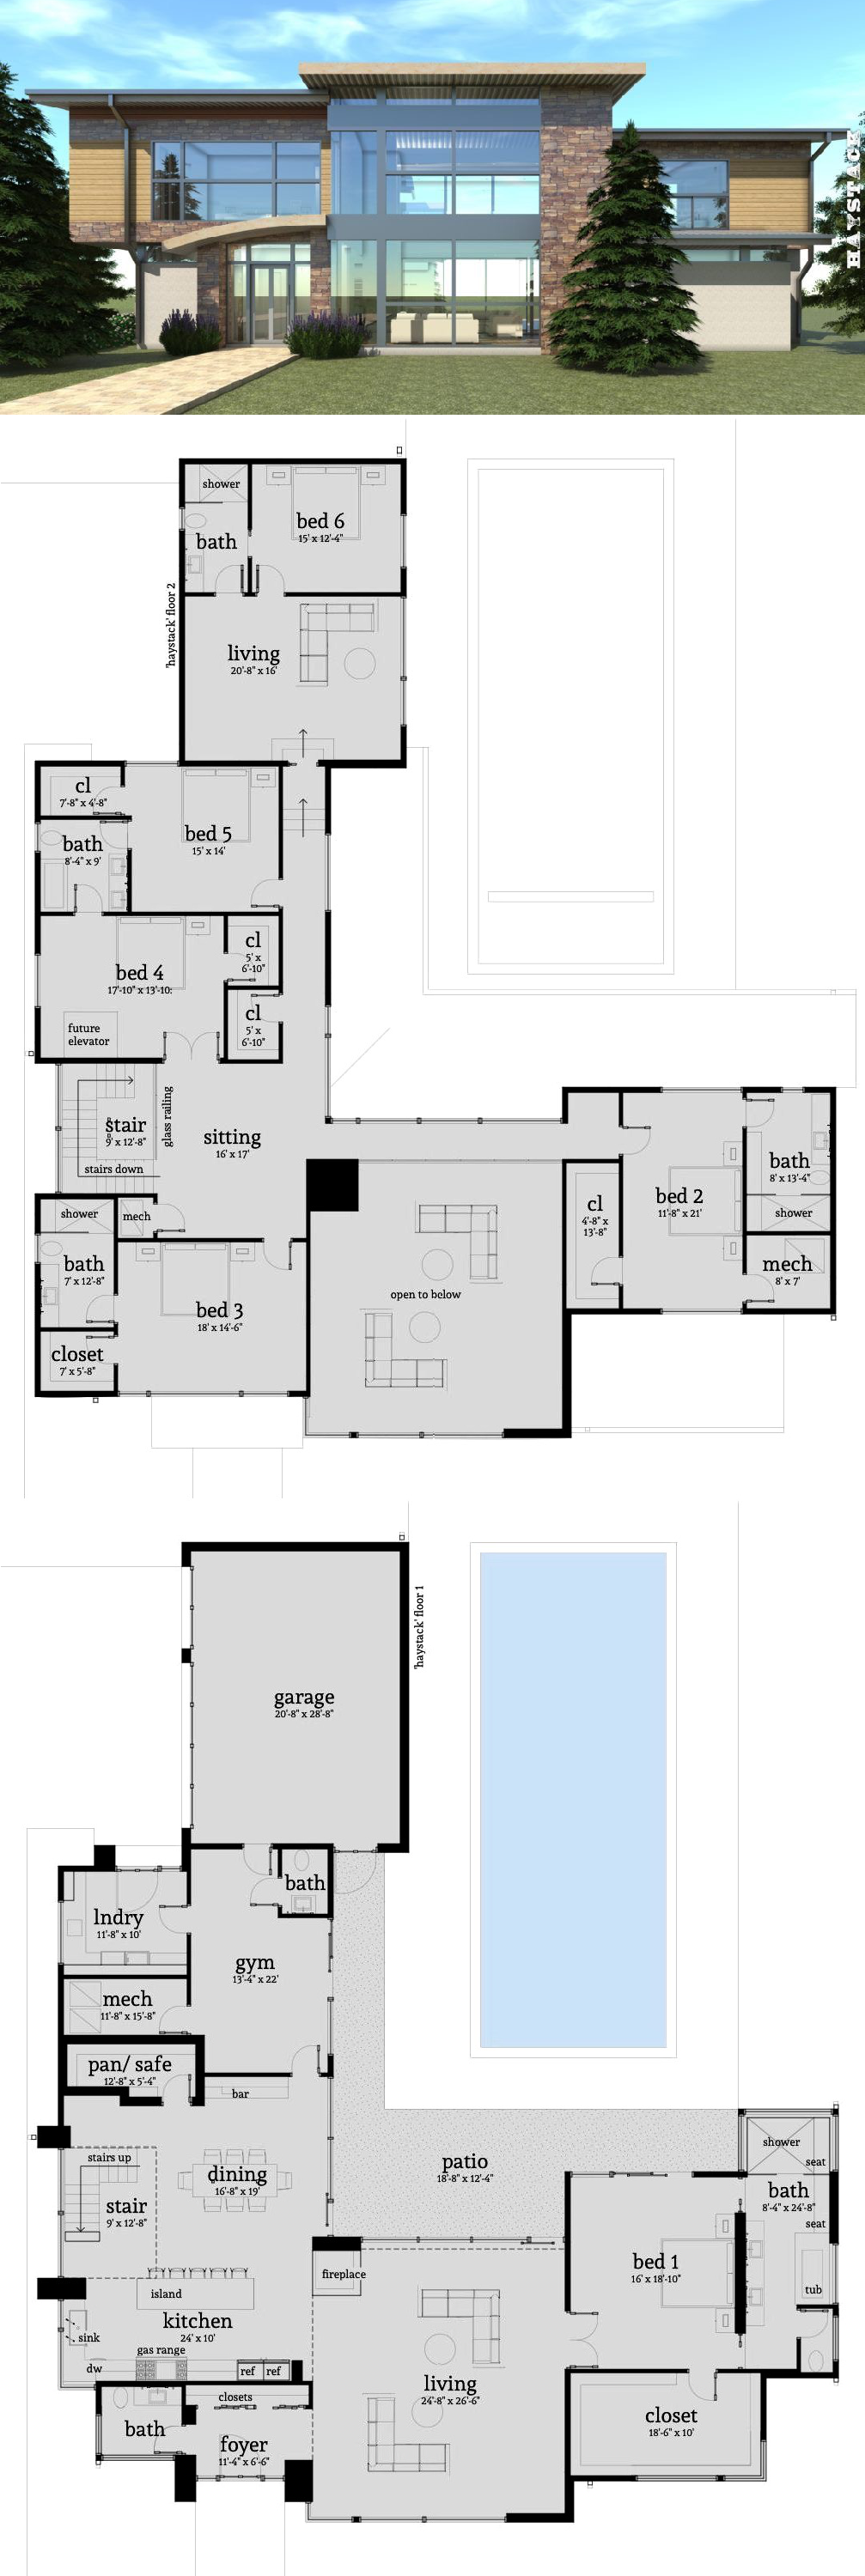 6 Bedroom Modern Home With Safe Room Tyree House Plans Luxury House Plans House Layouts Pool House Plans